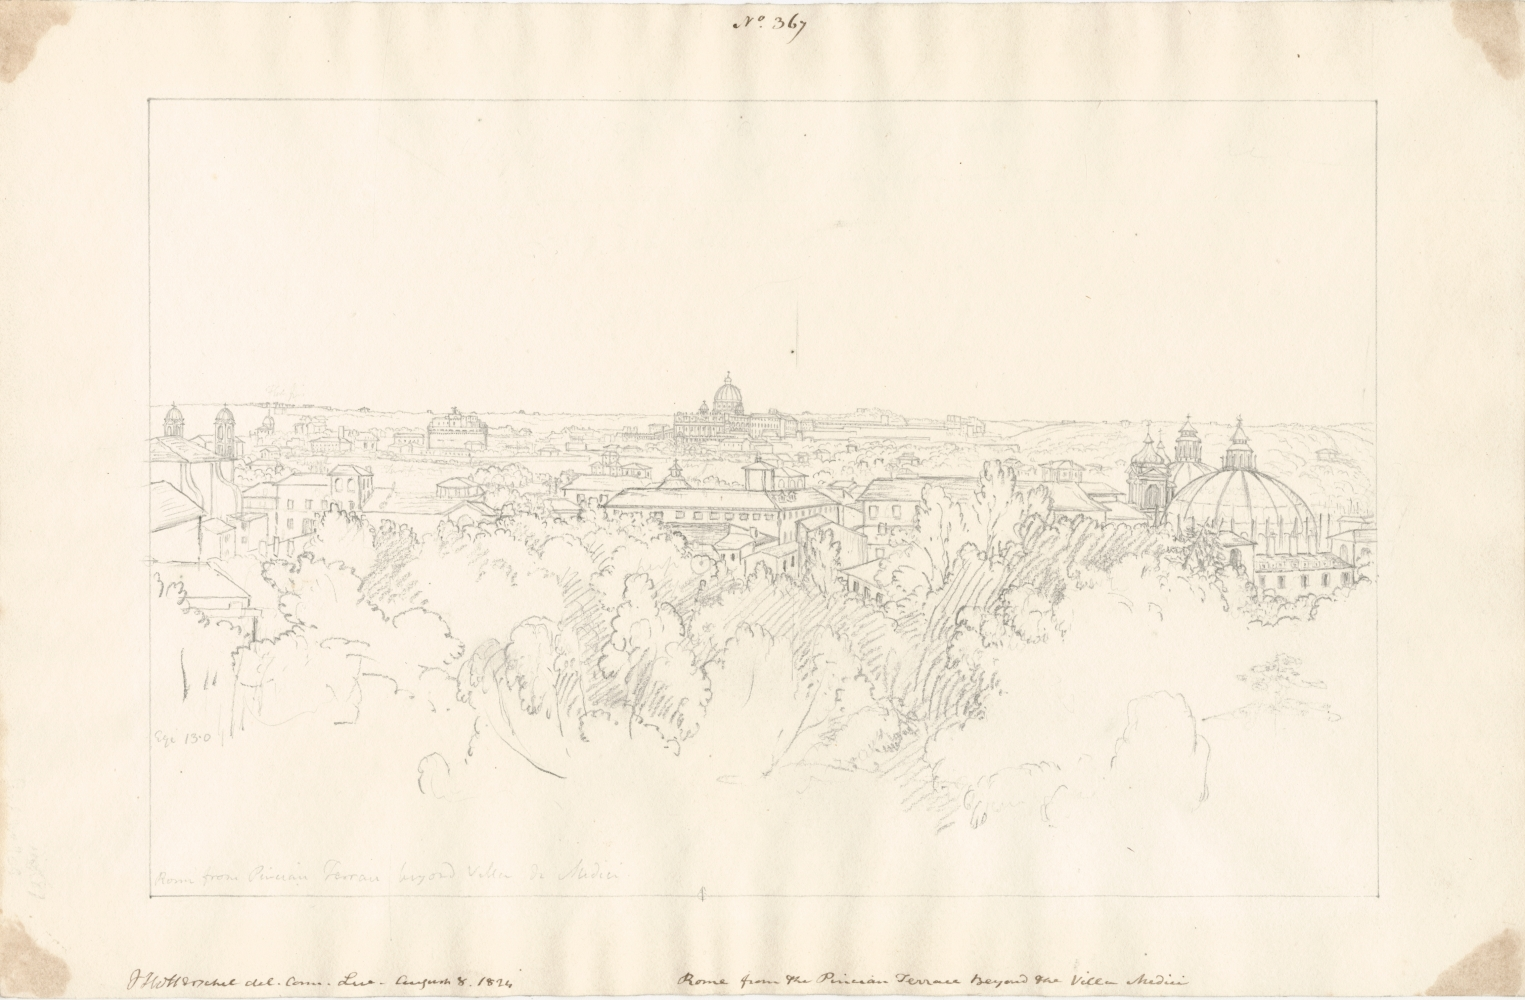 """Sir John Frederick William HERSCHEL (English, 1792-1872) """"Rome from the Pincian Terrace beyond the Villa Medici"""", 8 August 1824 Camera lucida drawing, pencil on paper 25.2 x 38.7 cm Signed, titled and annotated """"No. 367 / JFW Herschel del.Cam.Luc. August 8, 1824 / Rome from the Pincian Terrace beyond the Villa Medici"""" in brown ink; """" Egi [?] 13.0 / Rome from the Pincian Terrace beyond Villa de Medici"""" in pencil. """"Rome from the Pincian Terrace beyond Villa Medici / 2140"""" in pencil on verso."""